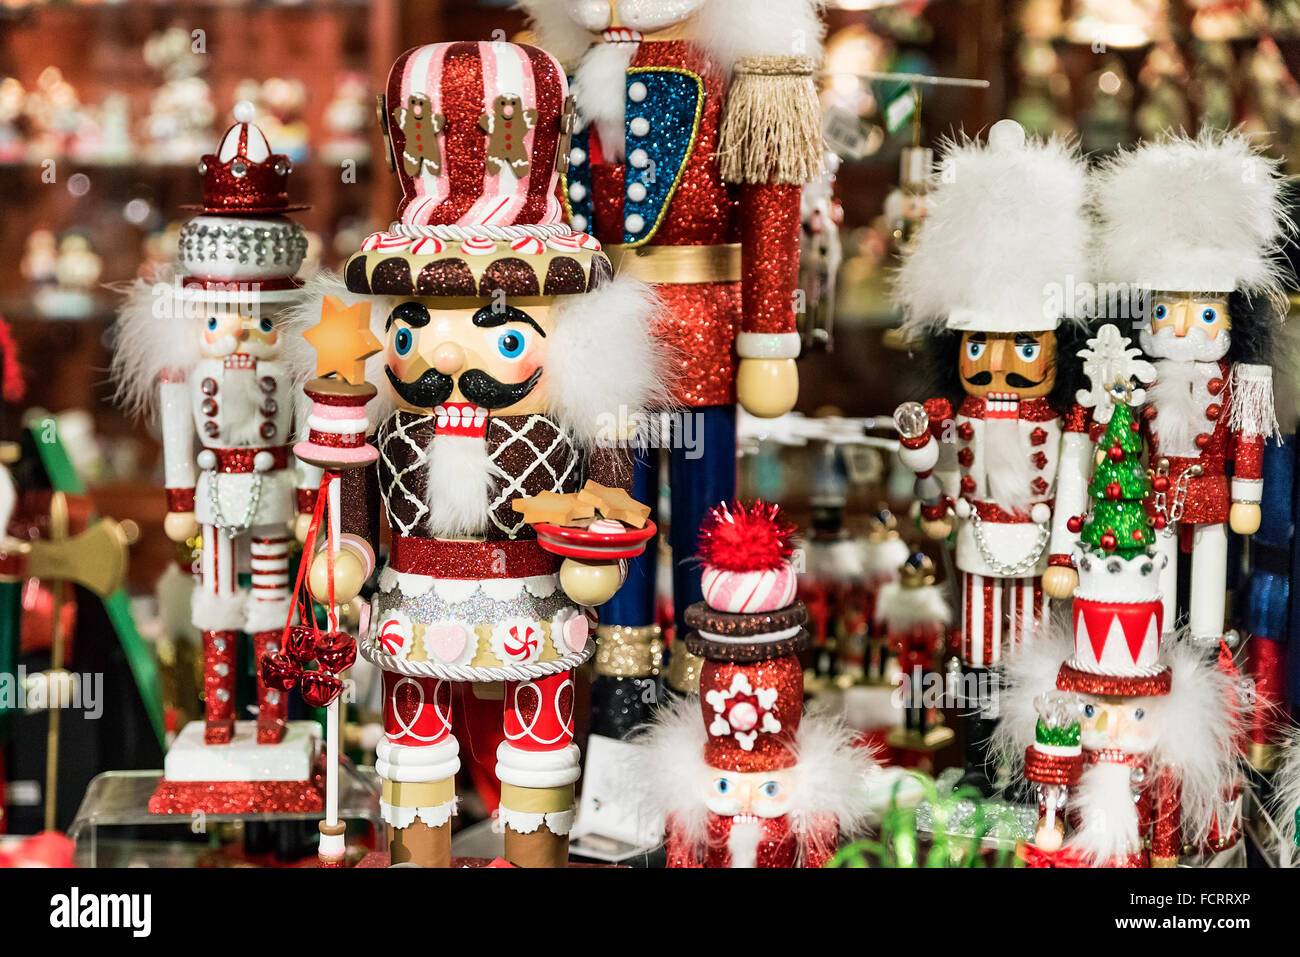 Christmas Nutcracker figurines in a holiday shop. - Stock Image